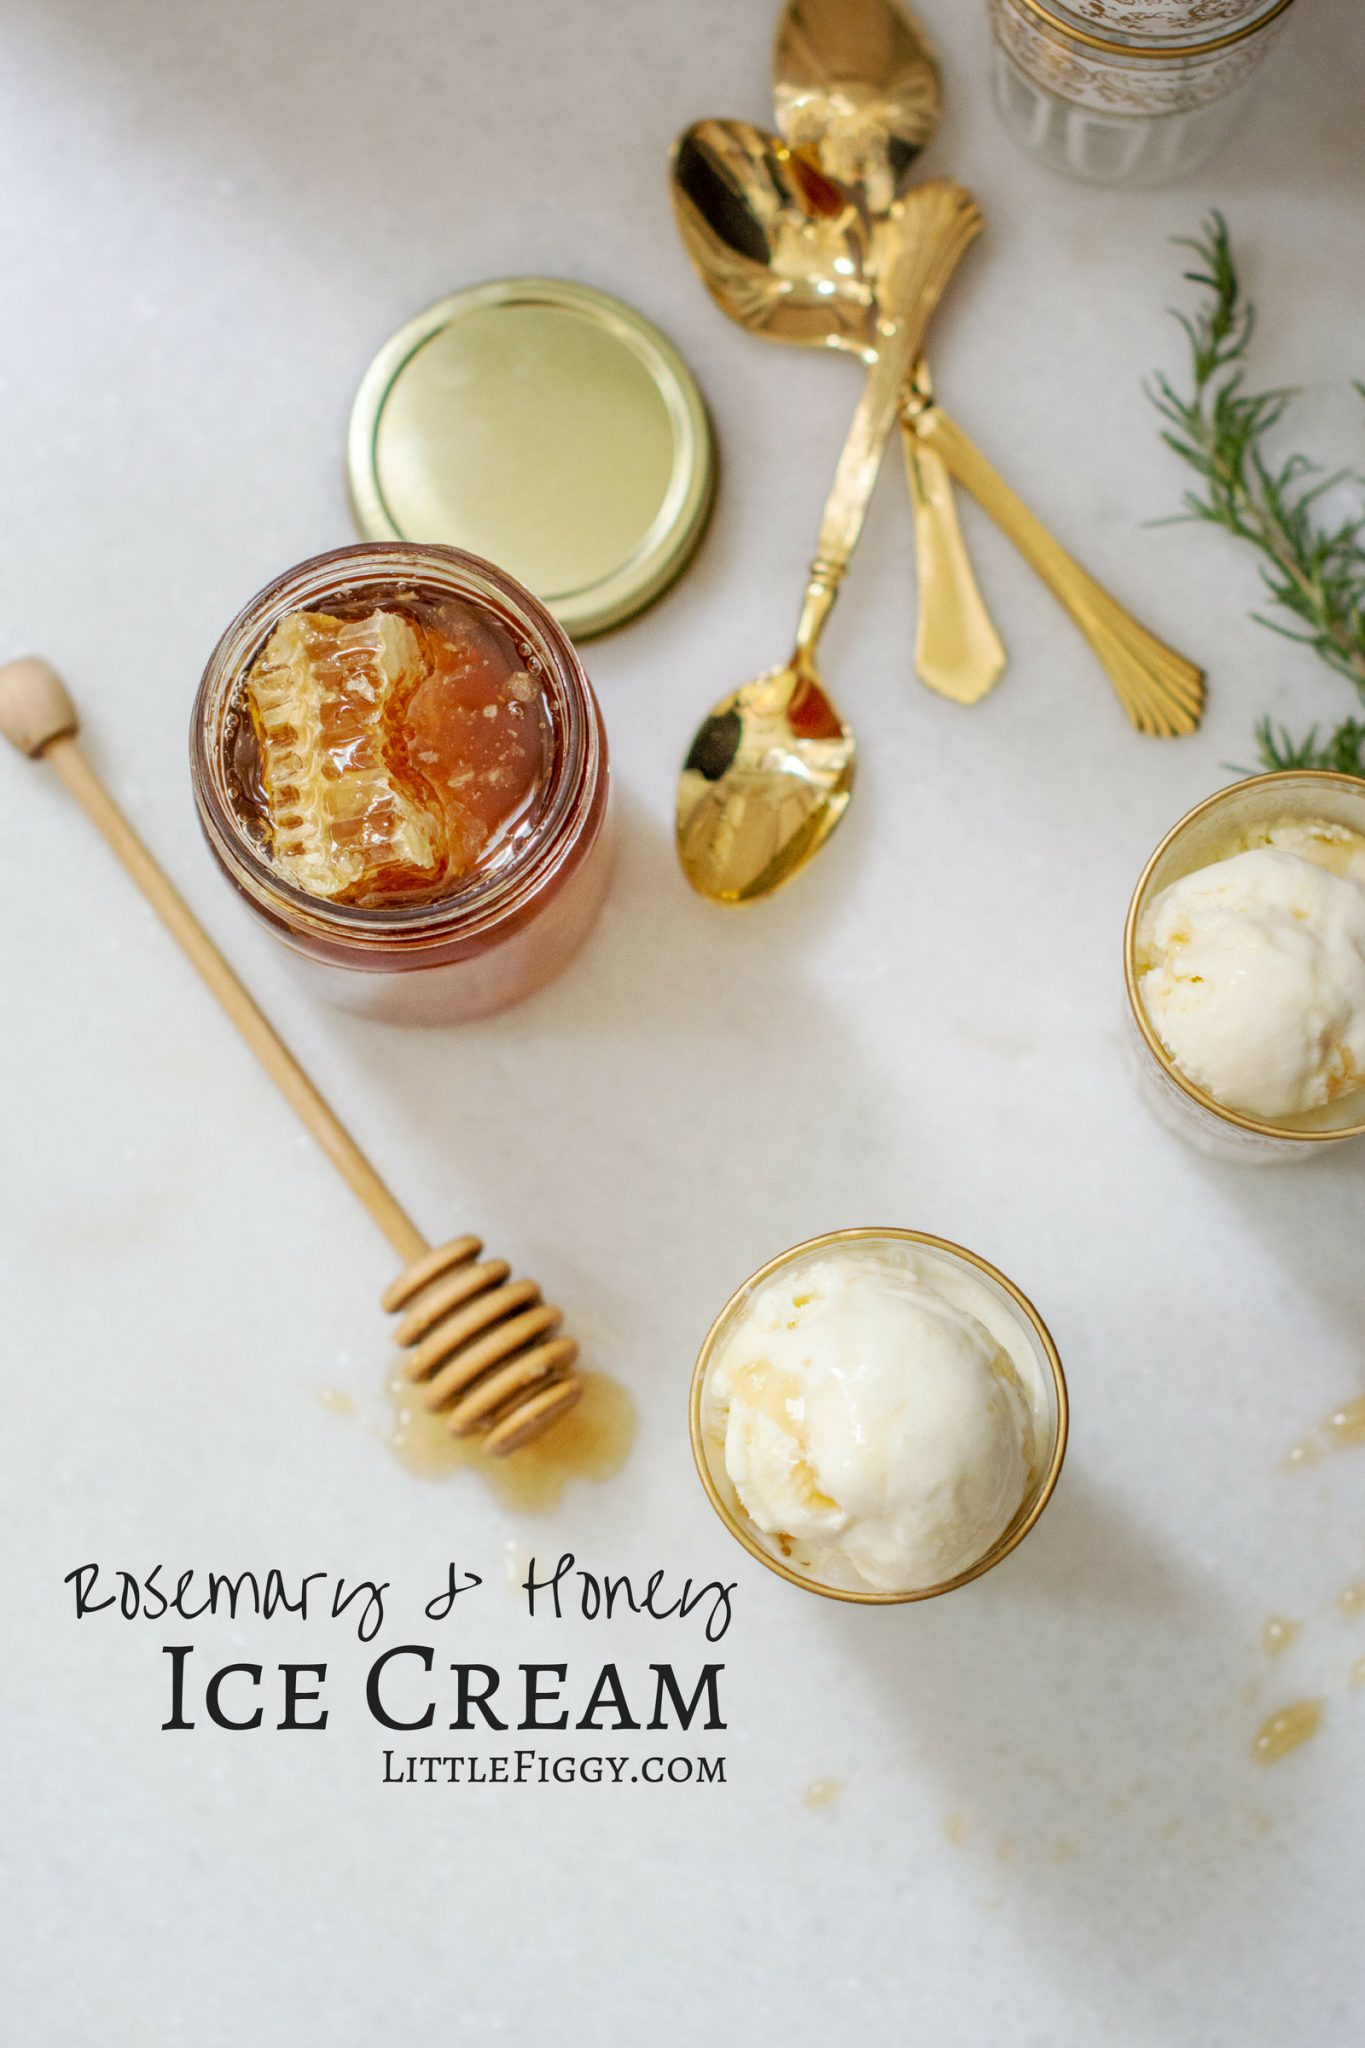 Rosemary and Honey Ice Cream with an extra drizzle of honey.